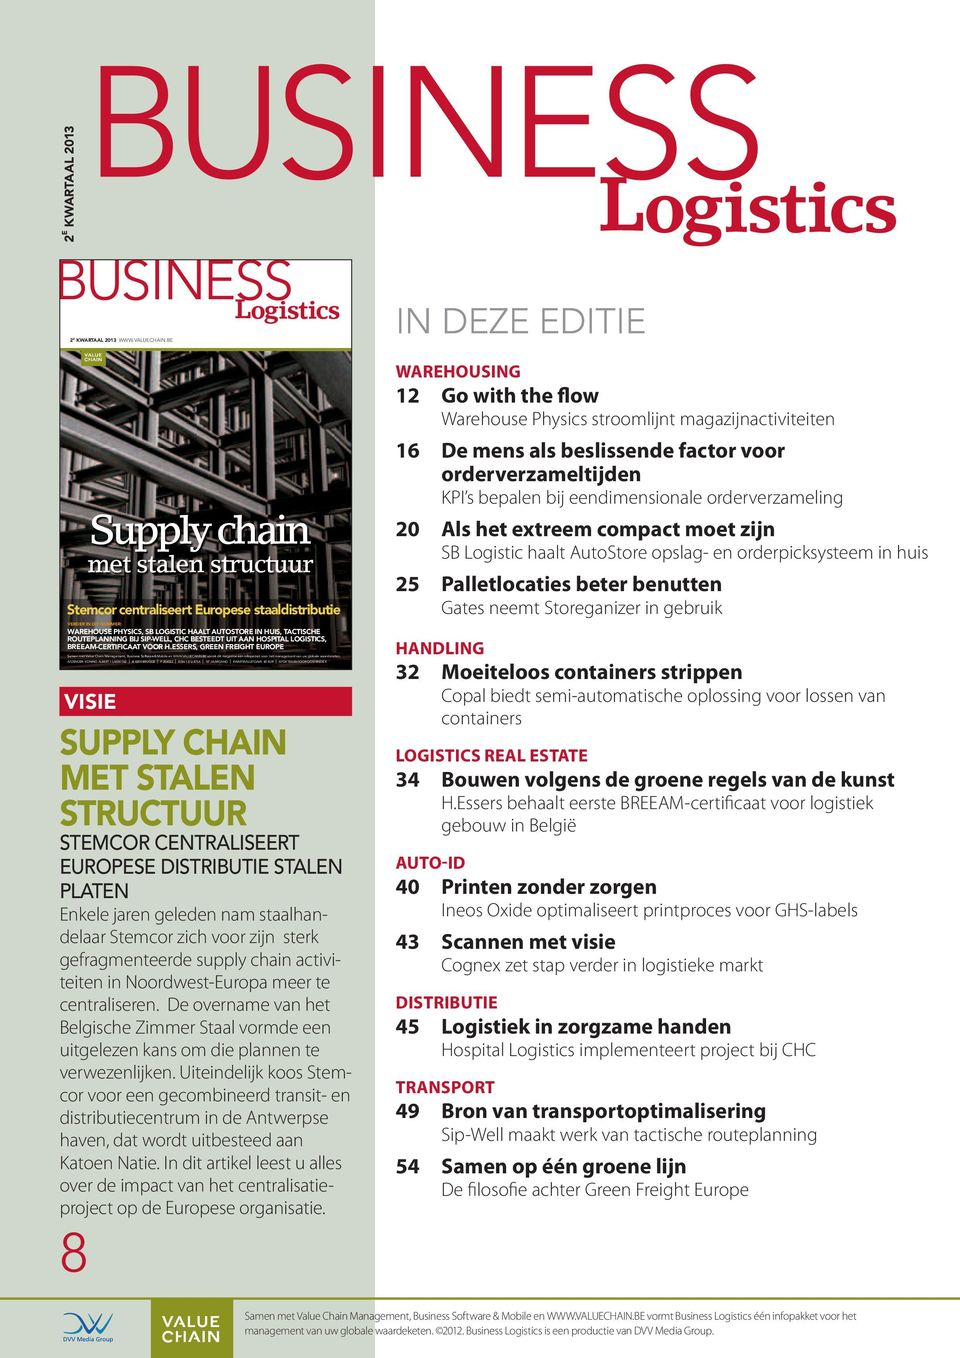 SIP-WELL, CHC BESTEEDT UIT AAN HOSPITAL LOGISTICS, BREEAM-CERTIFICAAT VOOR H.ESSERS, GREEN FREIGHT EUROPE Samen met Value Chain Management, Business Software&Mobile en WWW.VALUECHAIN.